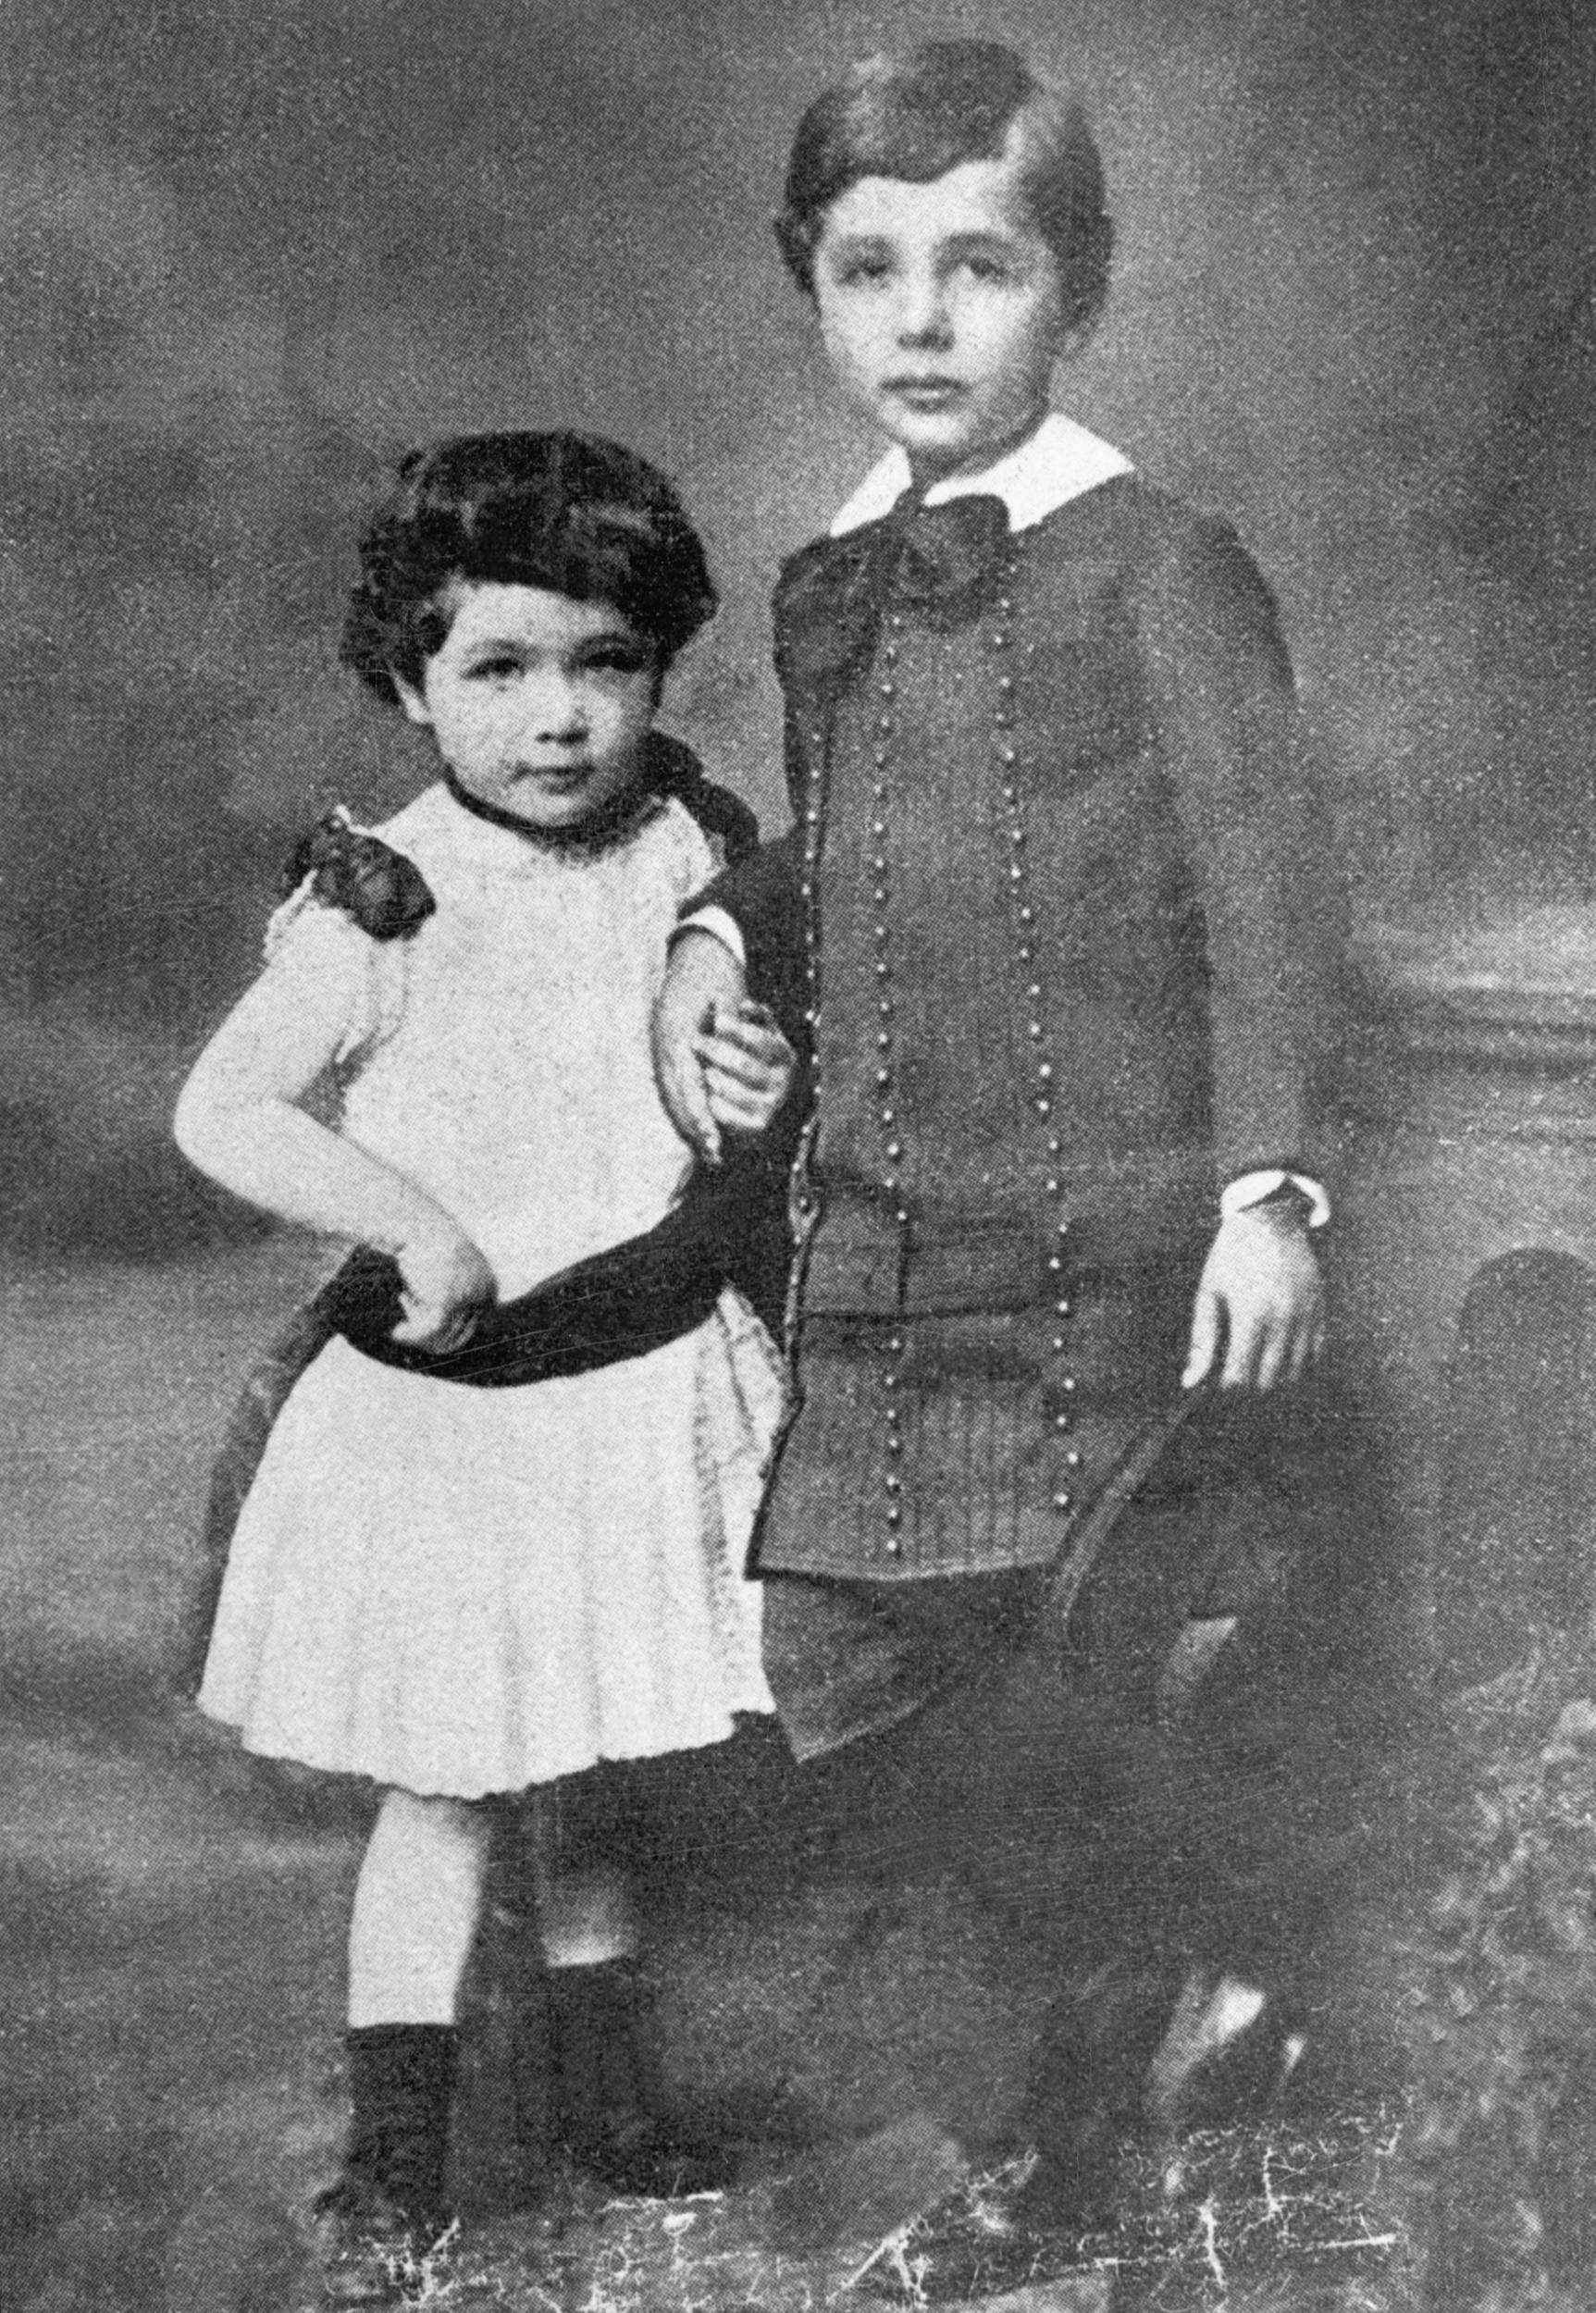 Albert with his younger sister Maria Photo: Bettmann/CORBIS